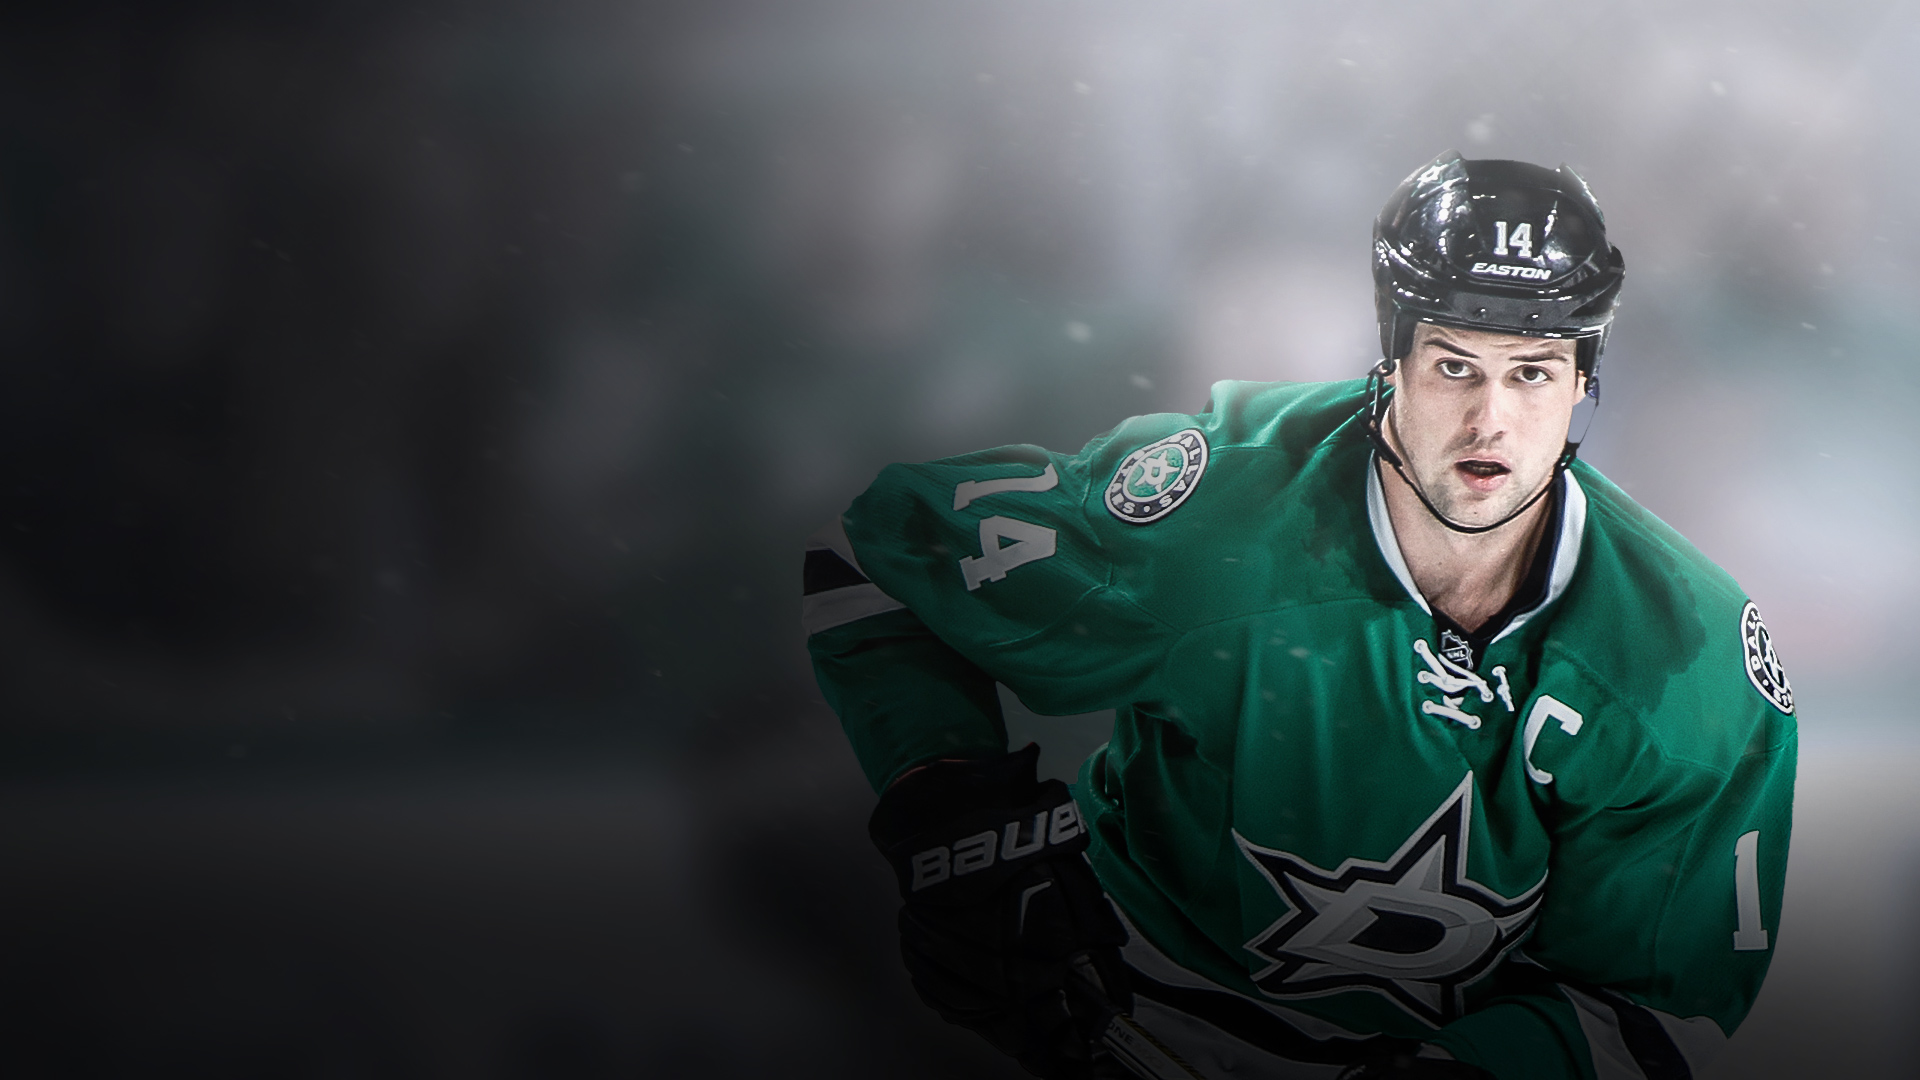 Nhl 17 hd wallpapers for Quality wallpaper